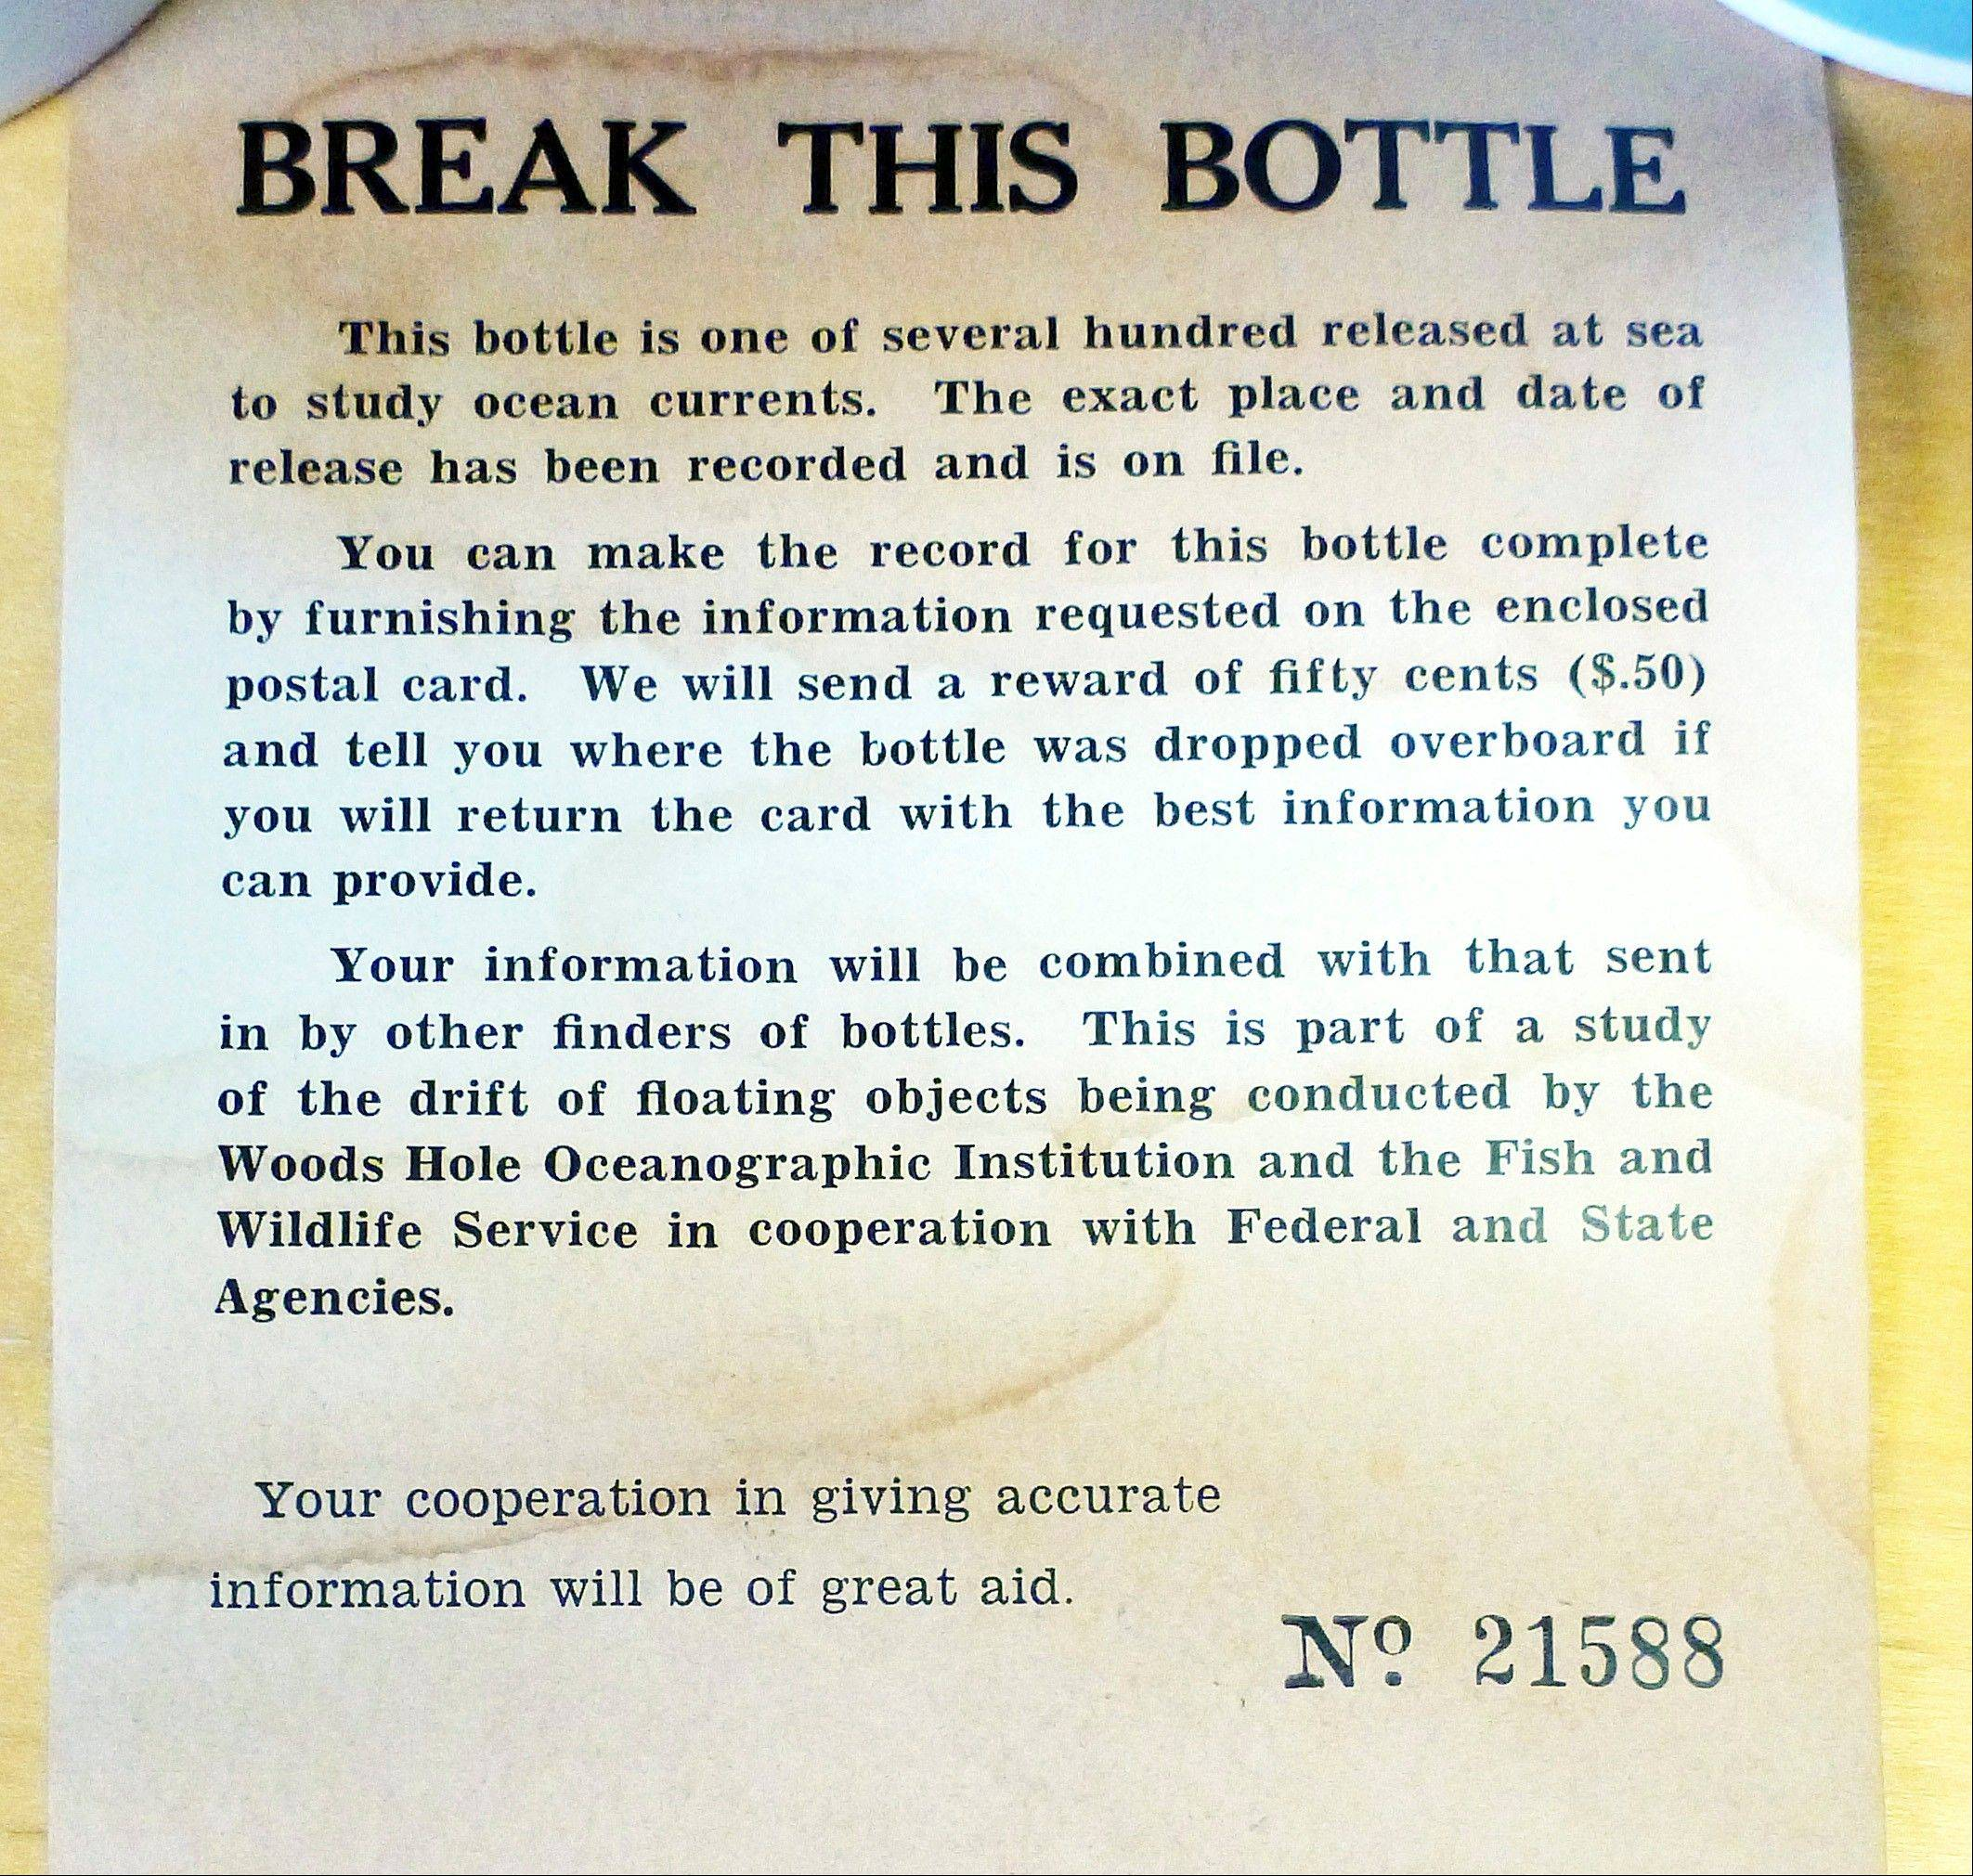 A message found inside a glass bottle recovered on Sable Island, Nova Scotia.